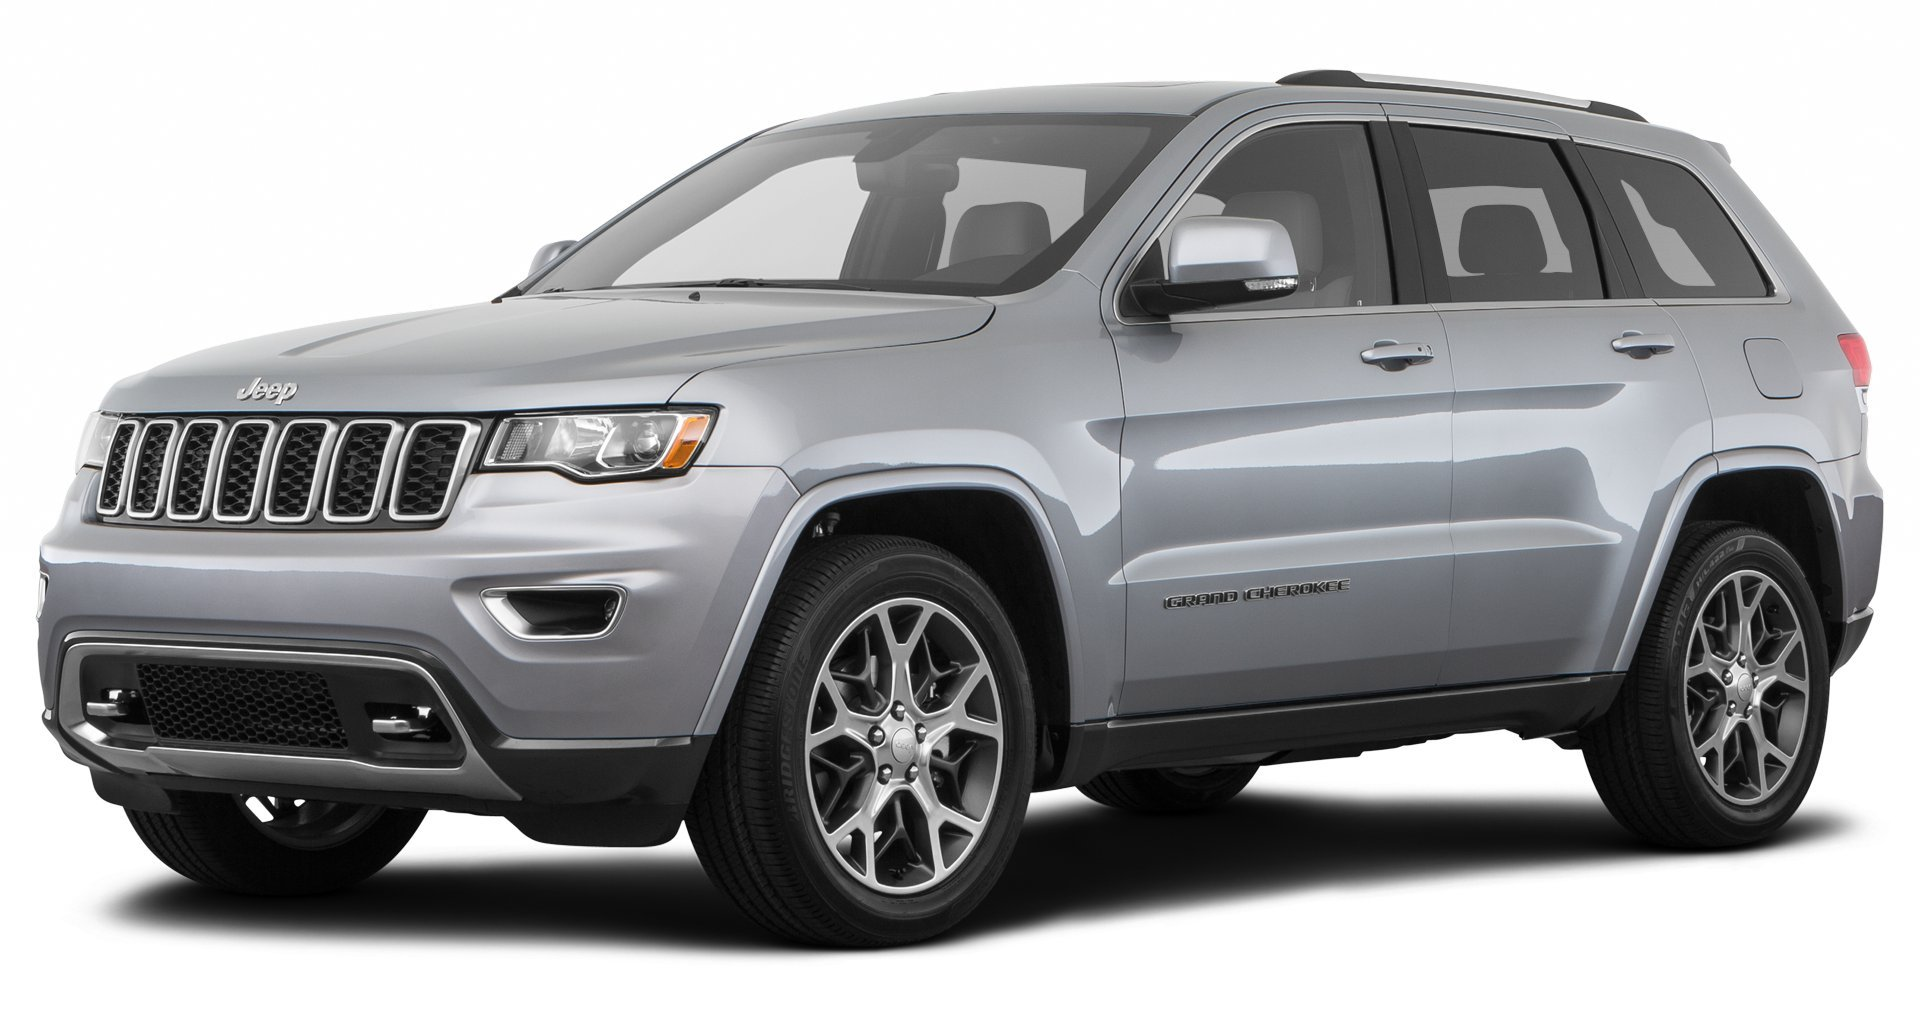 Amazon.com: 2018 Jeep Grand Cherokee Reviews, Images, and ...